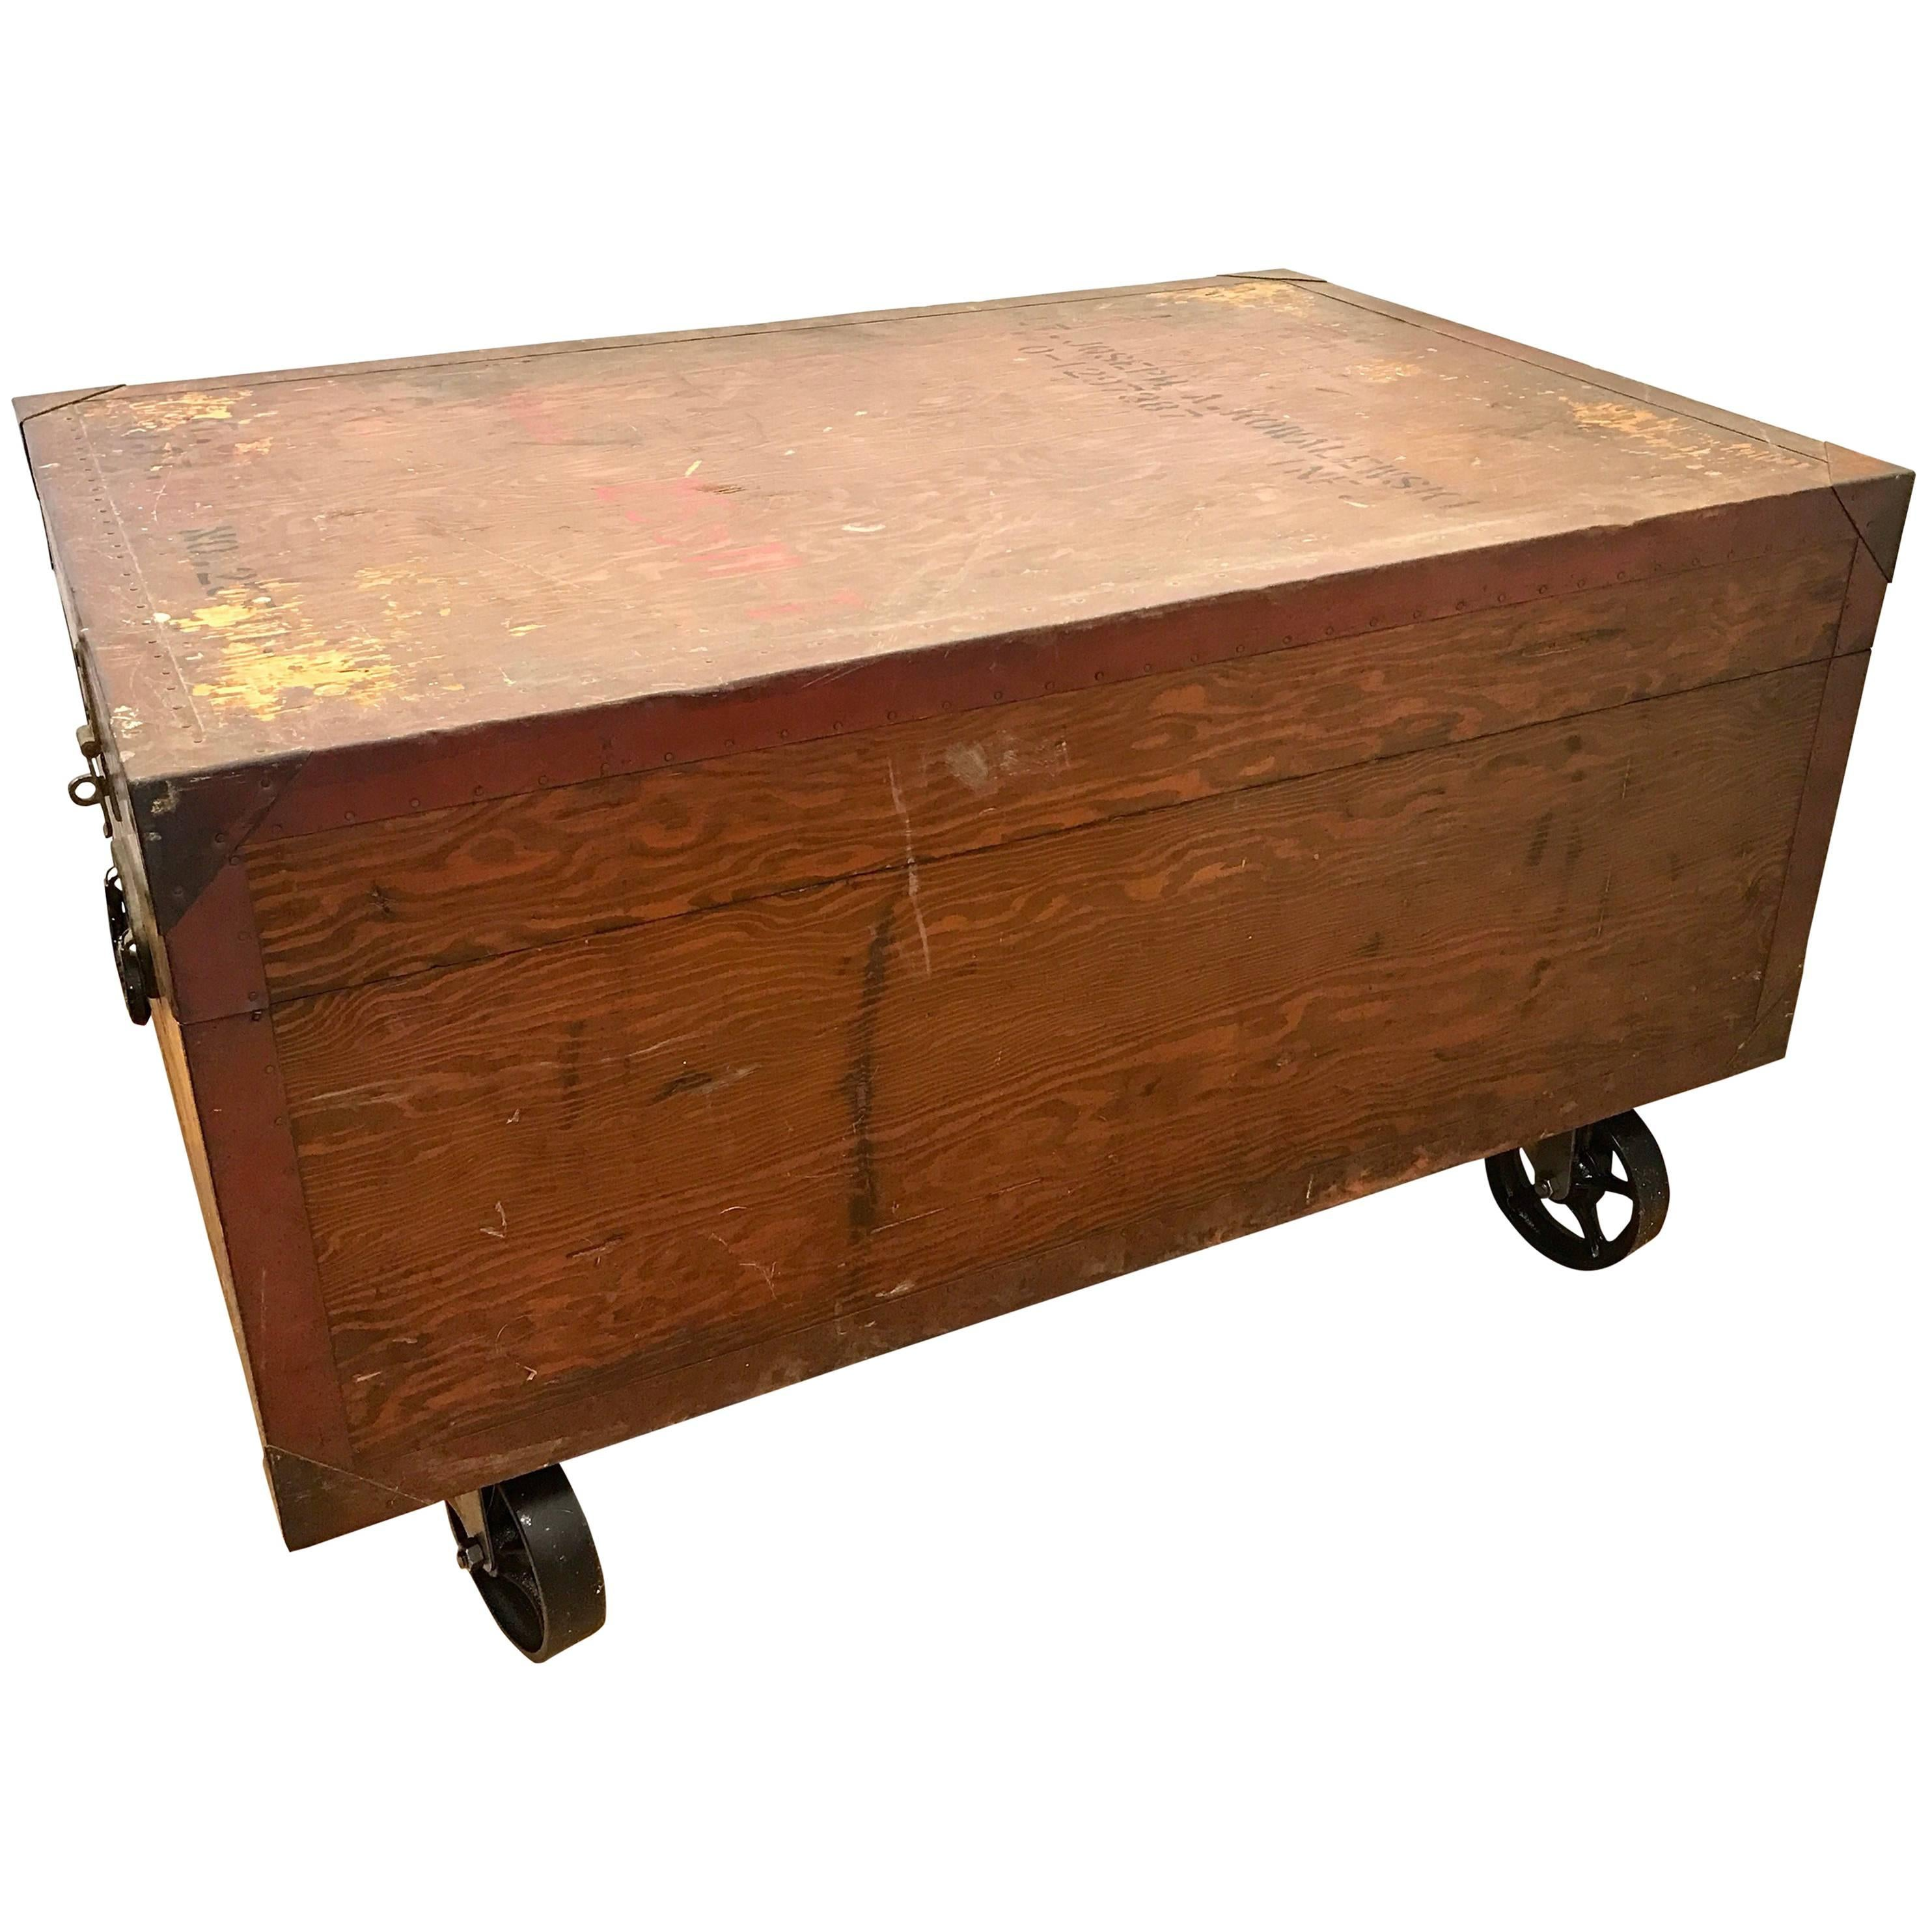 Beau Antique Industrial Wood Trunk Coffee Table